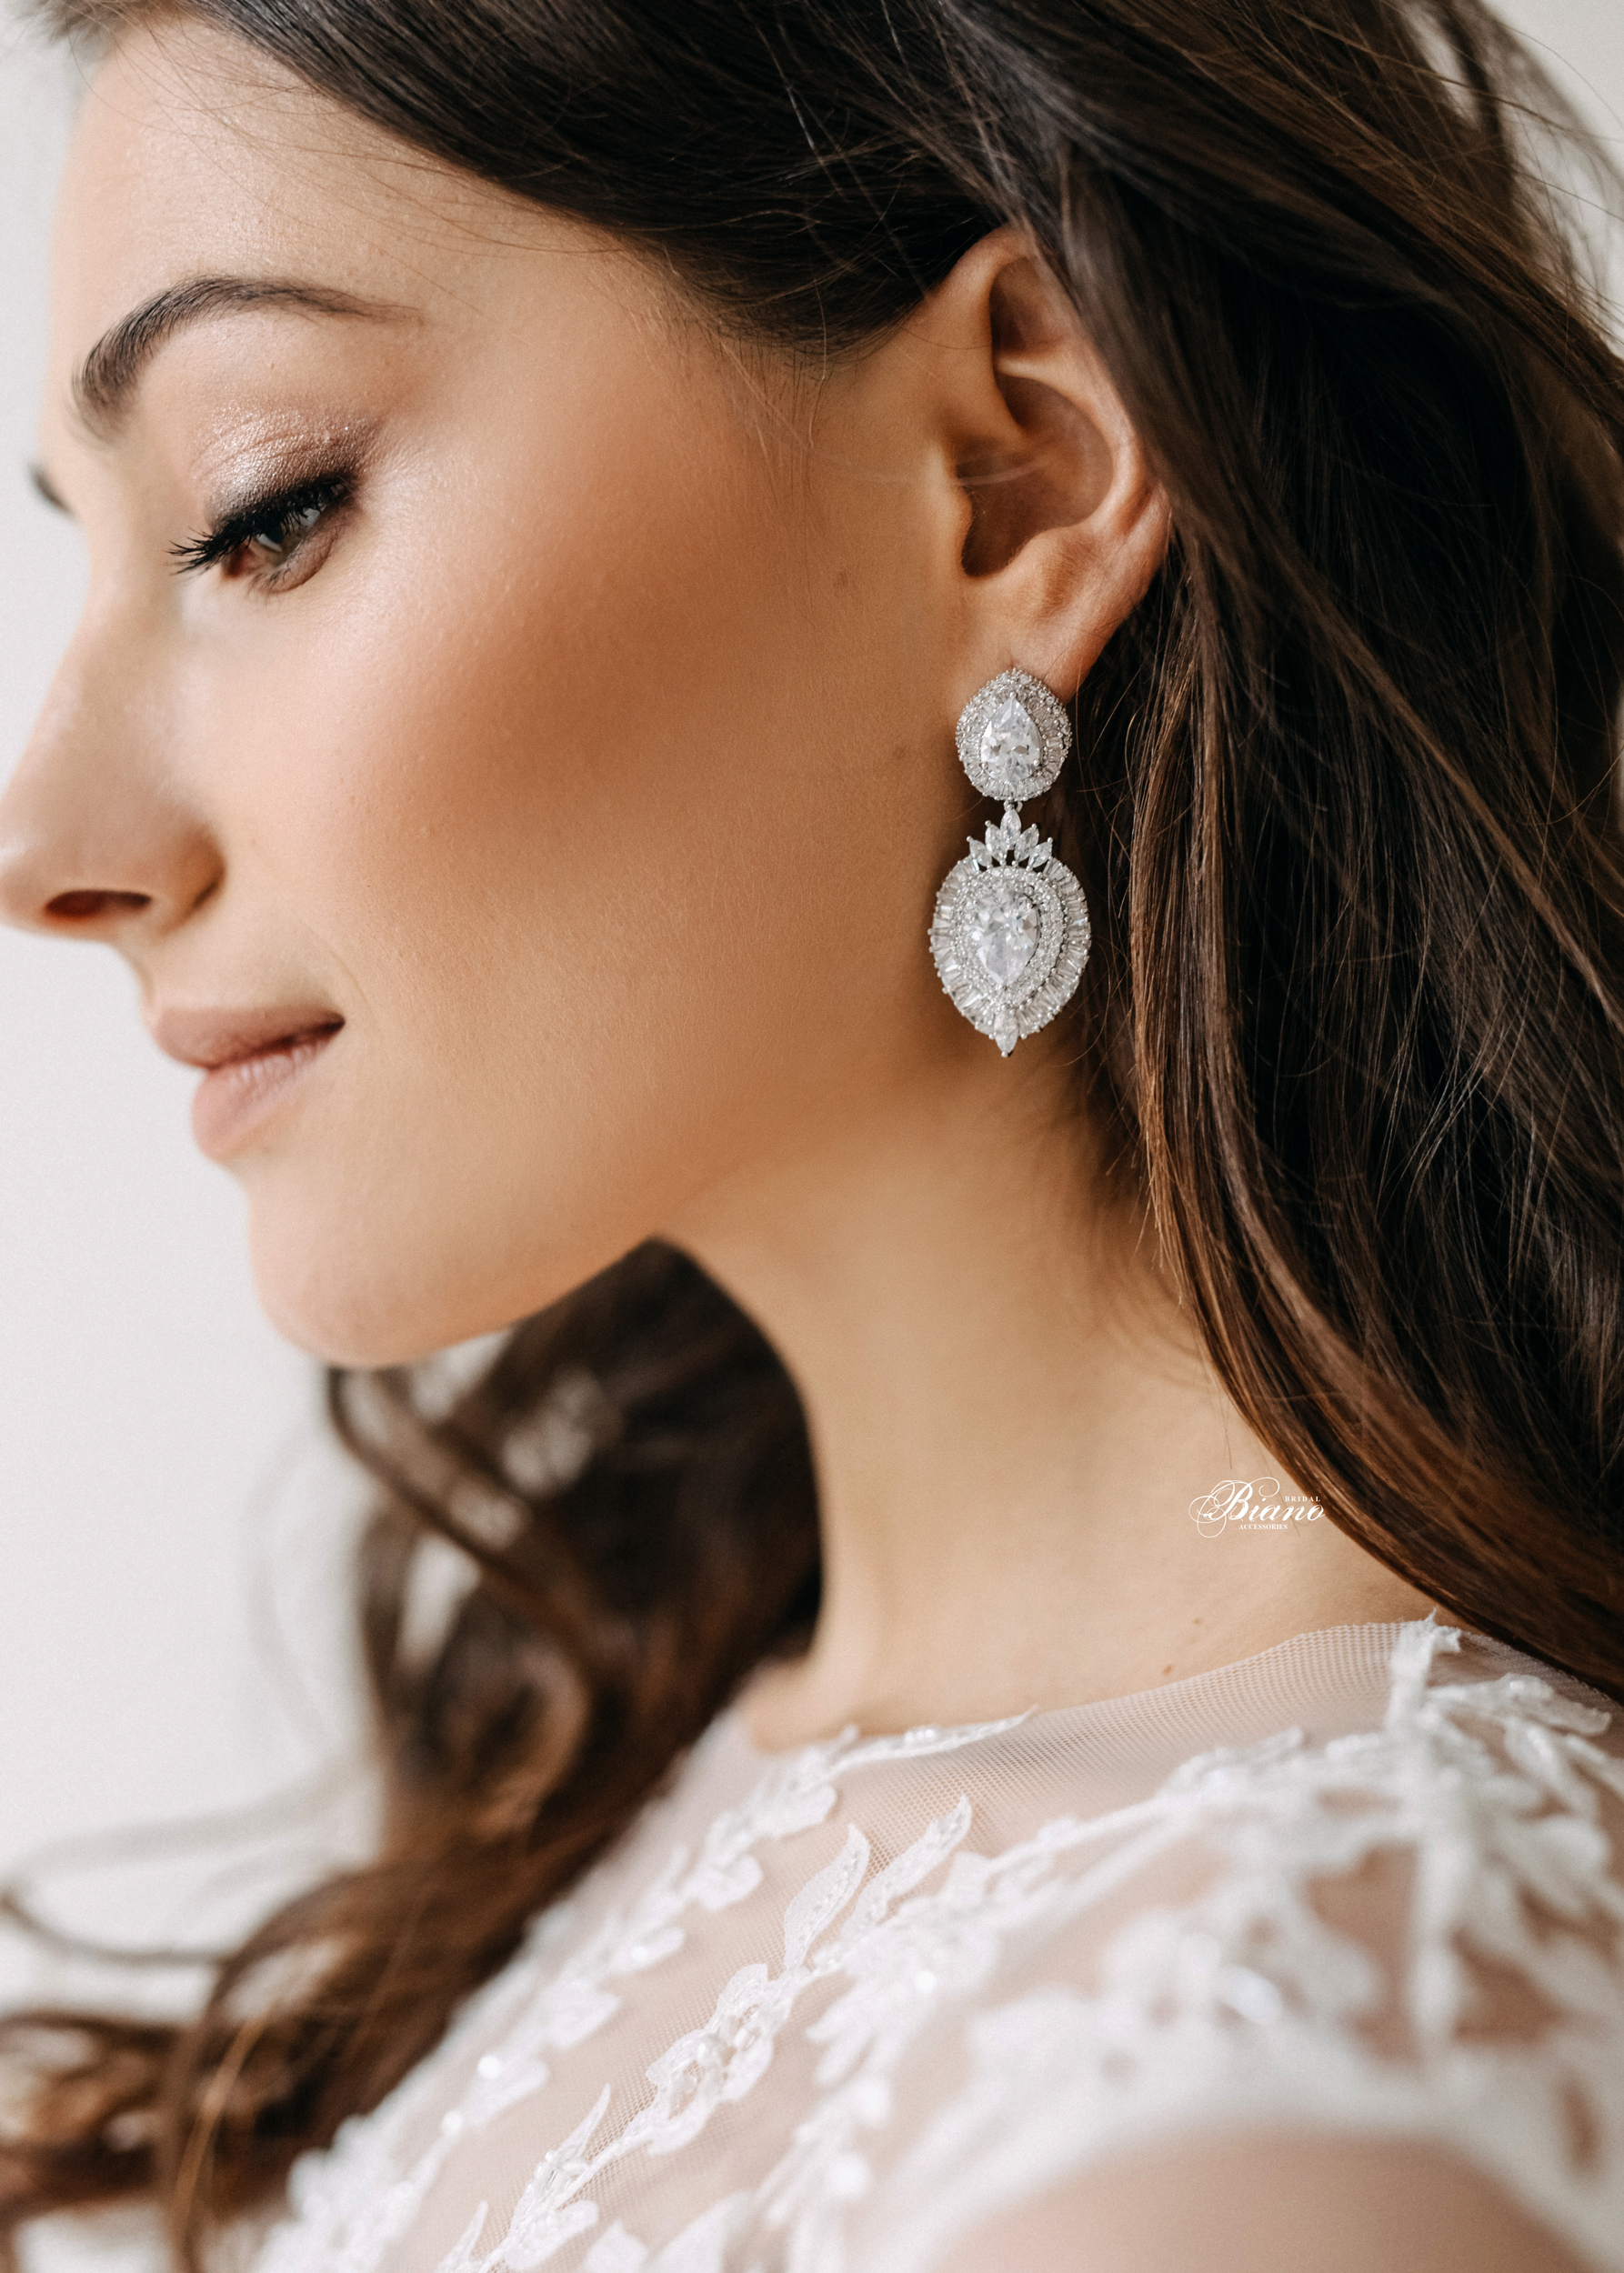 Find your perfect Wedding Drop Earrings - Handmade in SwitzerlandUnique DesignPossibility to Rush OrdersFree Shipping WorldwideCustomisable OrdersFast response on your questions